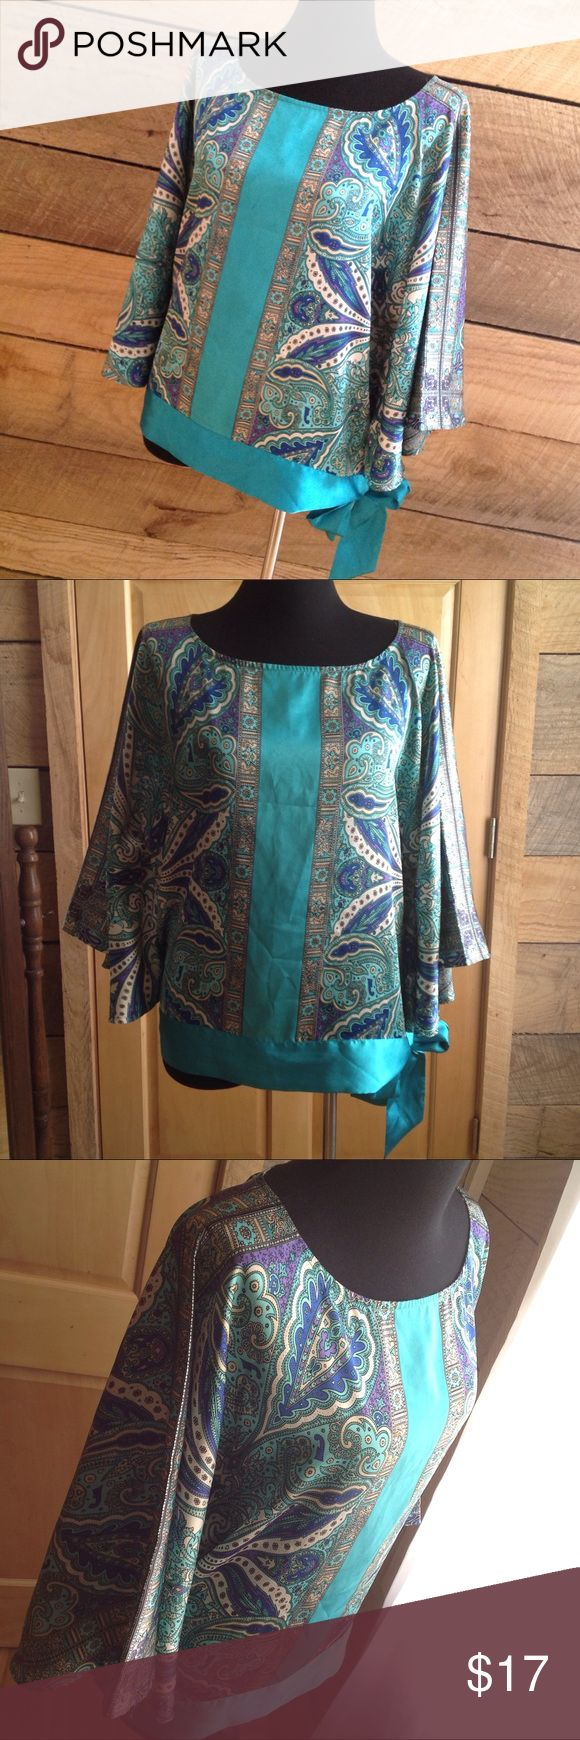 Lane Bryant Blue Paisley Blouse 18 20 Loose Tie Lane Bryant Tie Waist Loose Batwing Blouse  Woman plus Size 18 - 20 Polyester Turquoise Blue Paisley Scarf Shirt   inches Armpit to Armpit:31 Shoulder Seam to Hem: 26 Shoulder Seam to Cuff: 13 The needle holes from sewing bow shut are visible when bow is untied. See last photo for detail Lane Bryant Blouse Turquoise Paisley Batwing Tie Waist Shirt Lane Bryant Tops Blouses